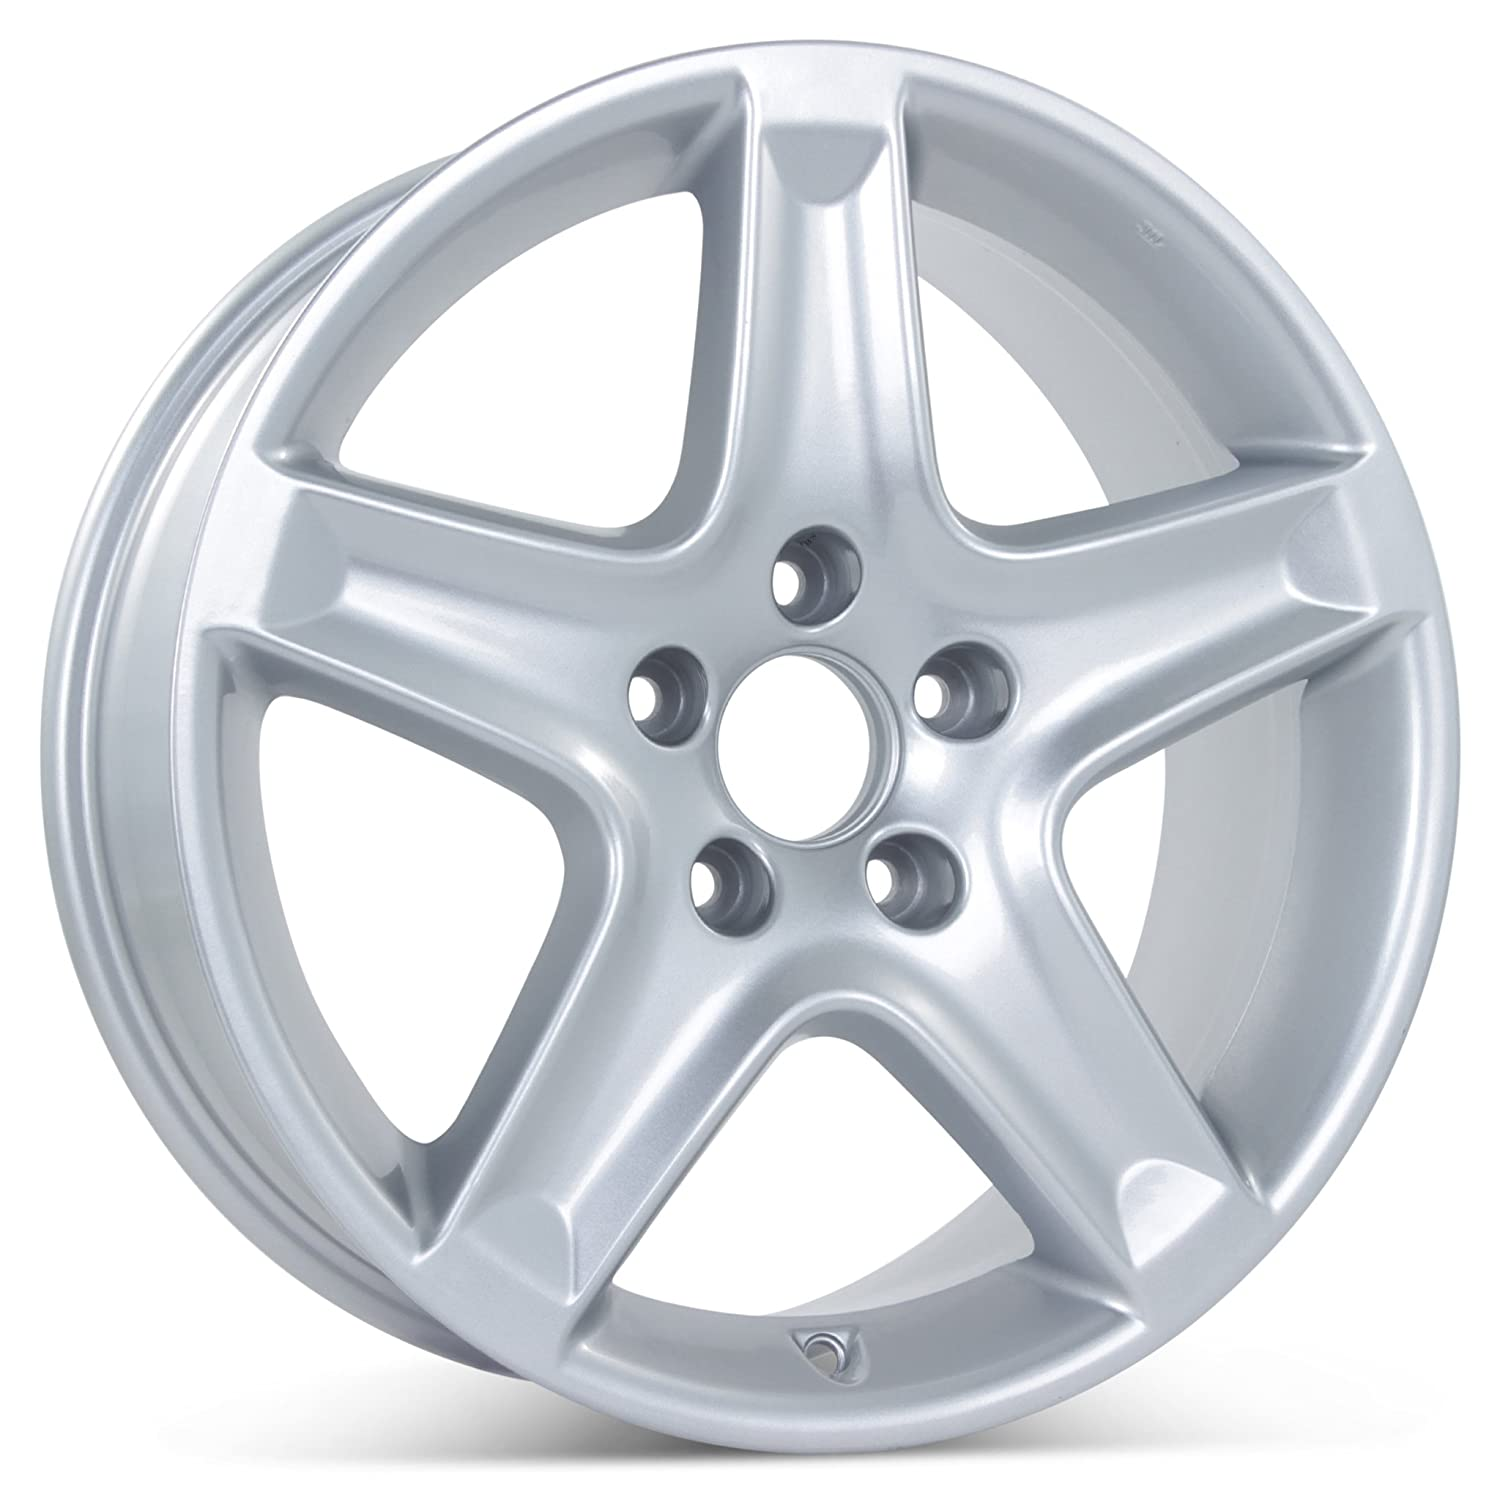 Brand New 17' x 8' Replacement Wheel for Acura TL Rim 71733 WheelerShip